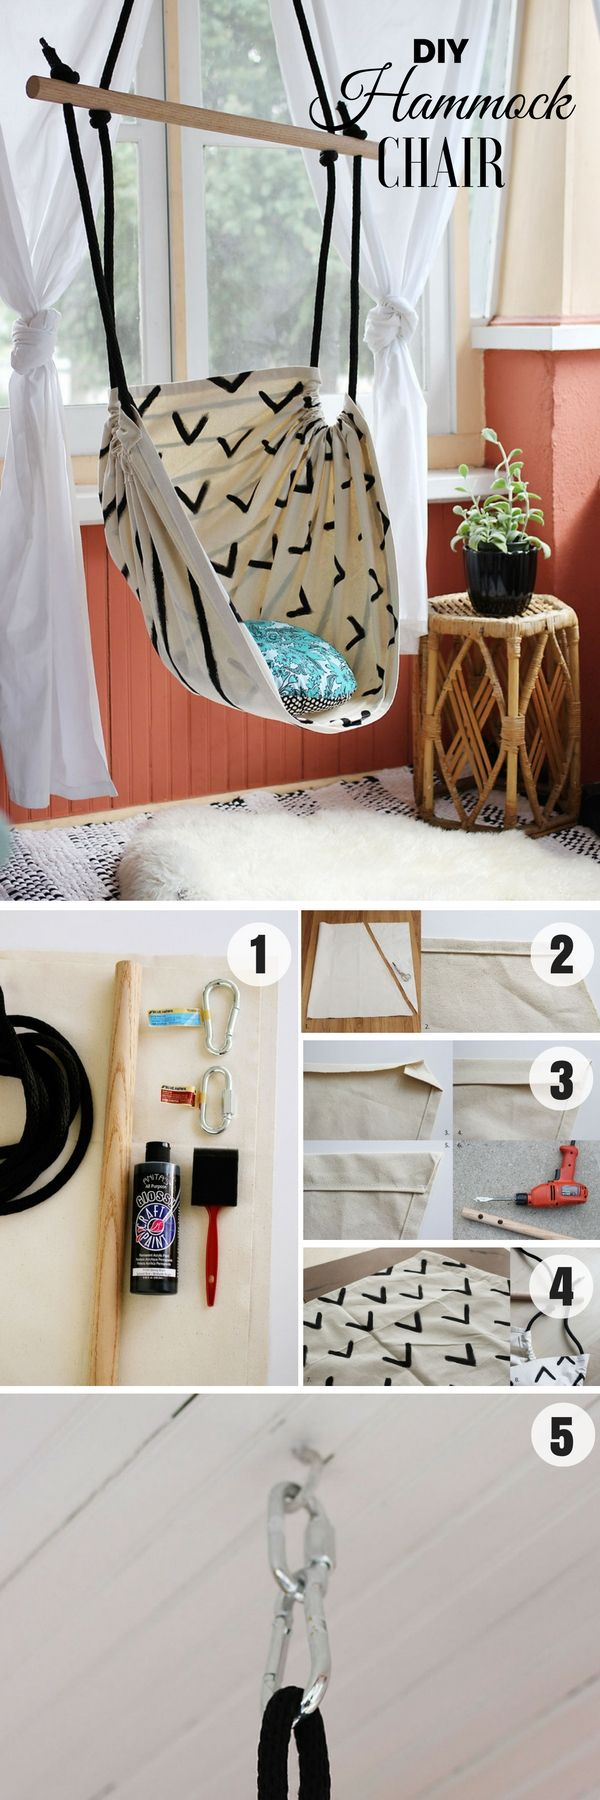 16 Beautiful DIY Bedroom Decor Ideas That Will Inspire YouThe 25  best Easy diy ideas on Pinterest   DIY  Fun diy projects  . Diy Room Decor Ideas Pinterest. Home Design Ideas